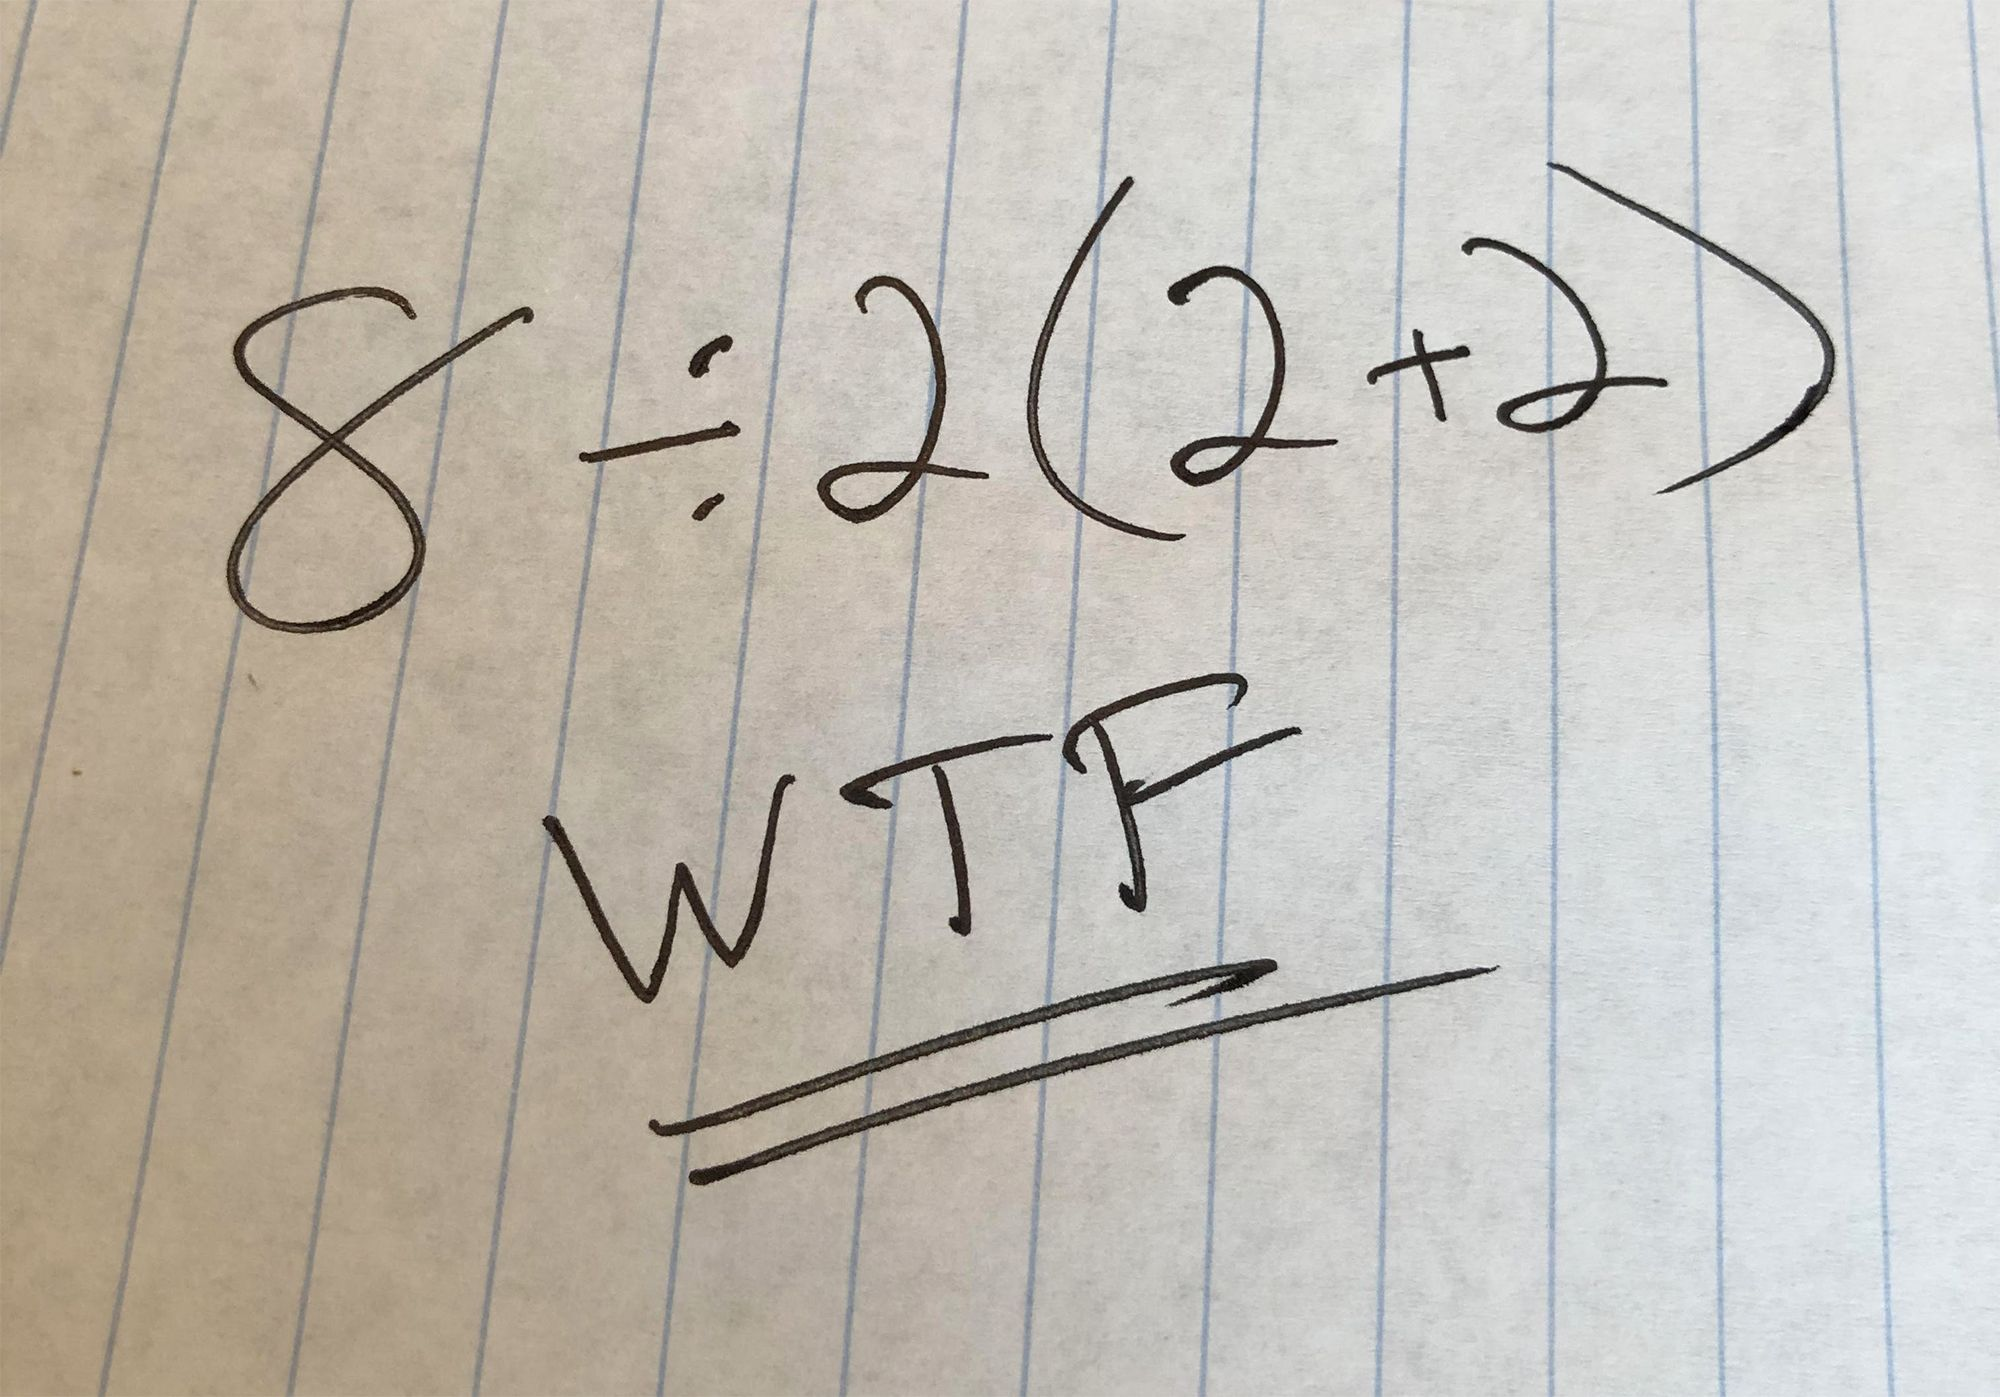 This Simple Math Problem Drove Our Entire Staff Insane. Can You Solve It?